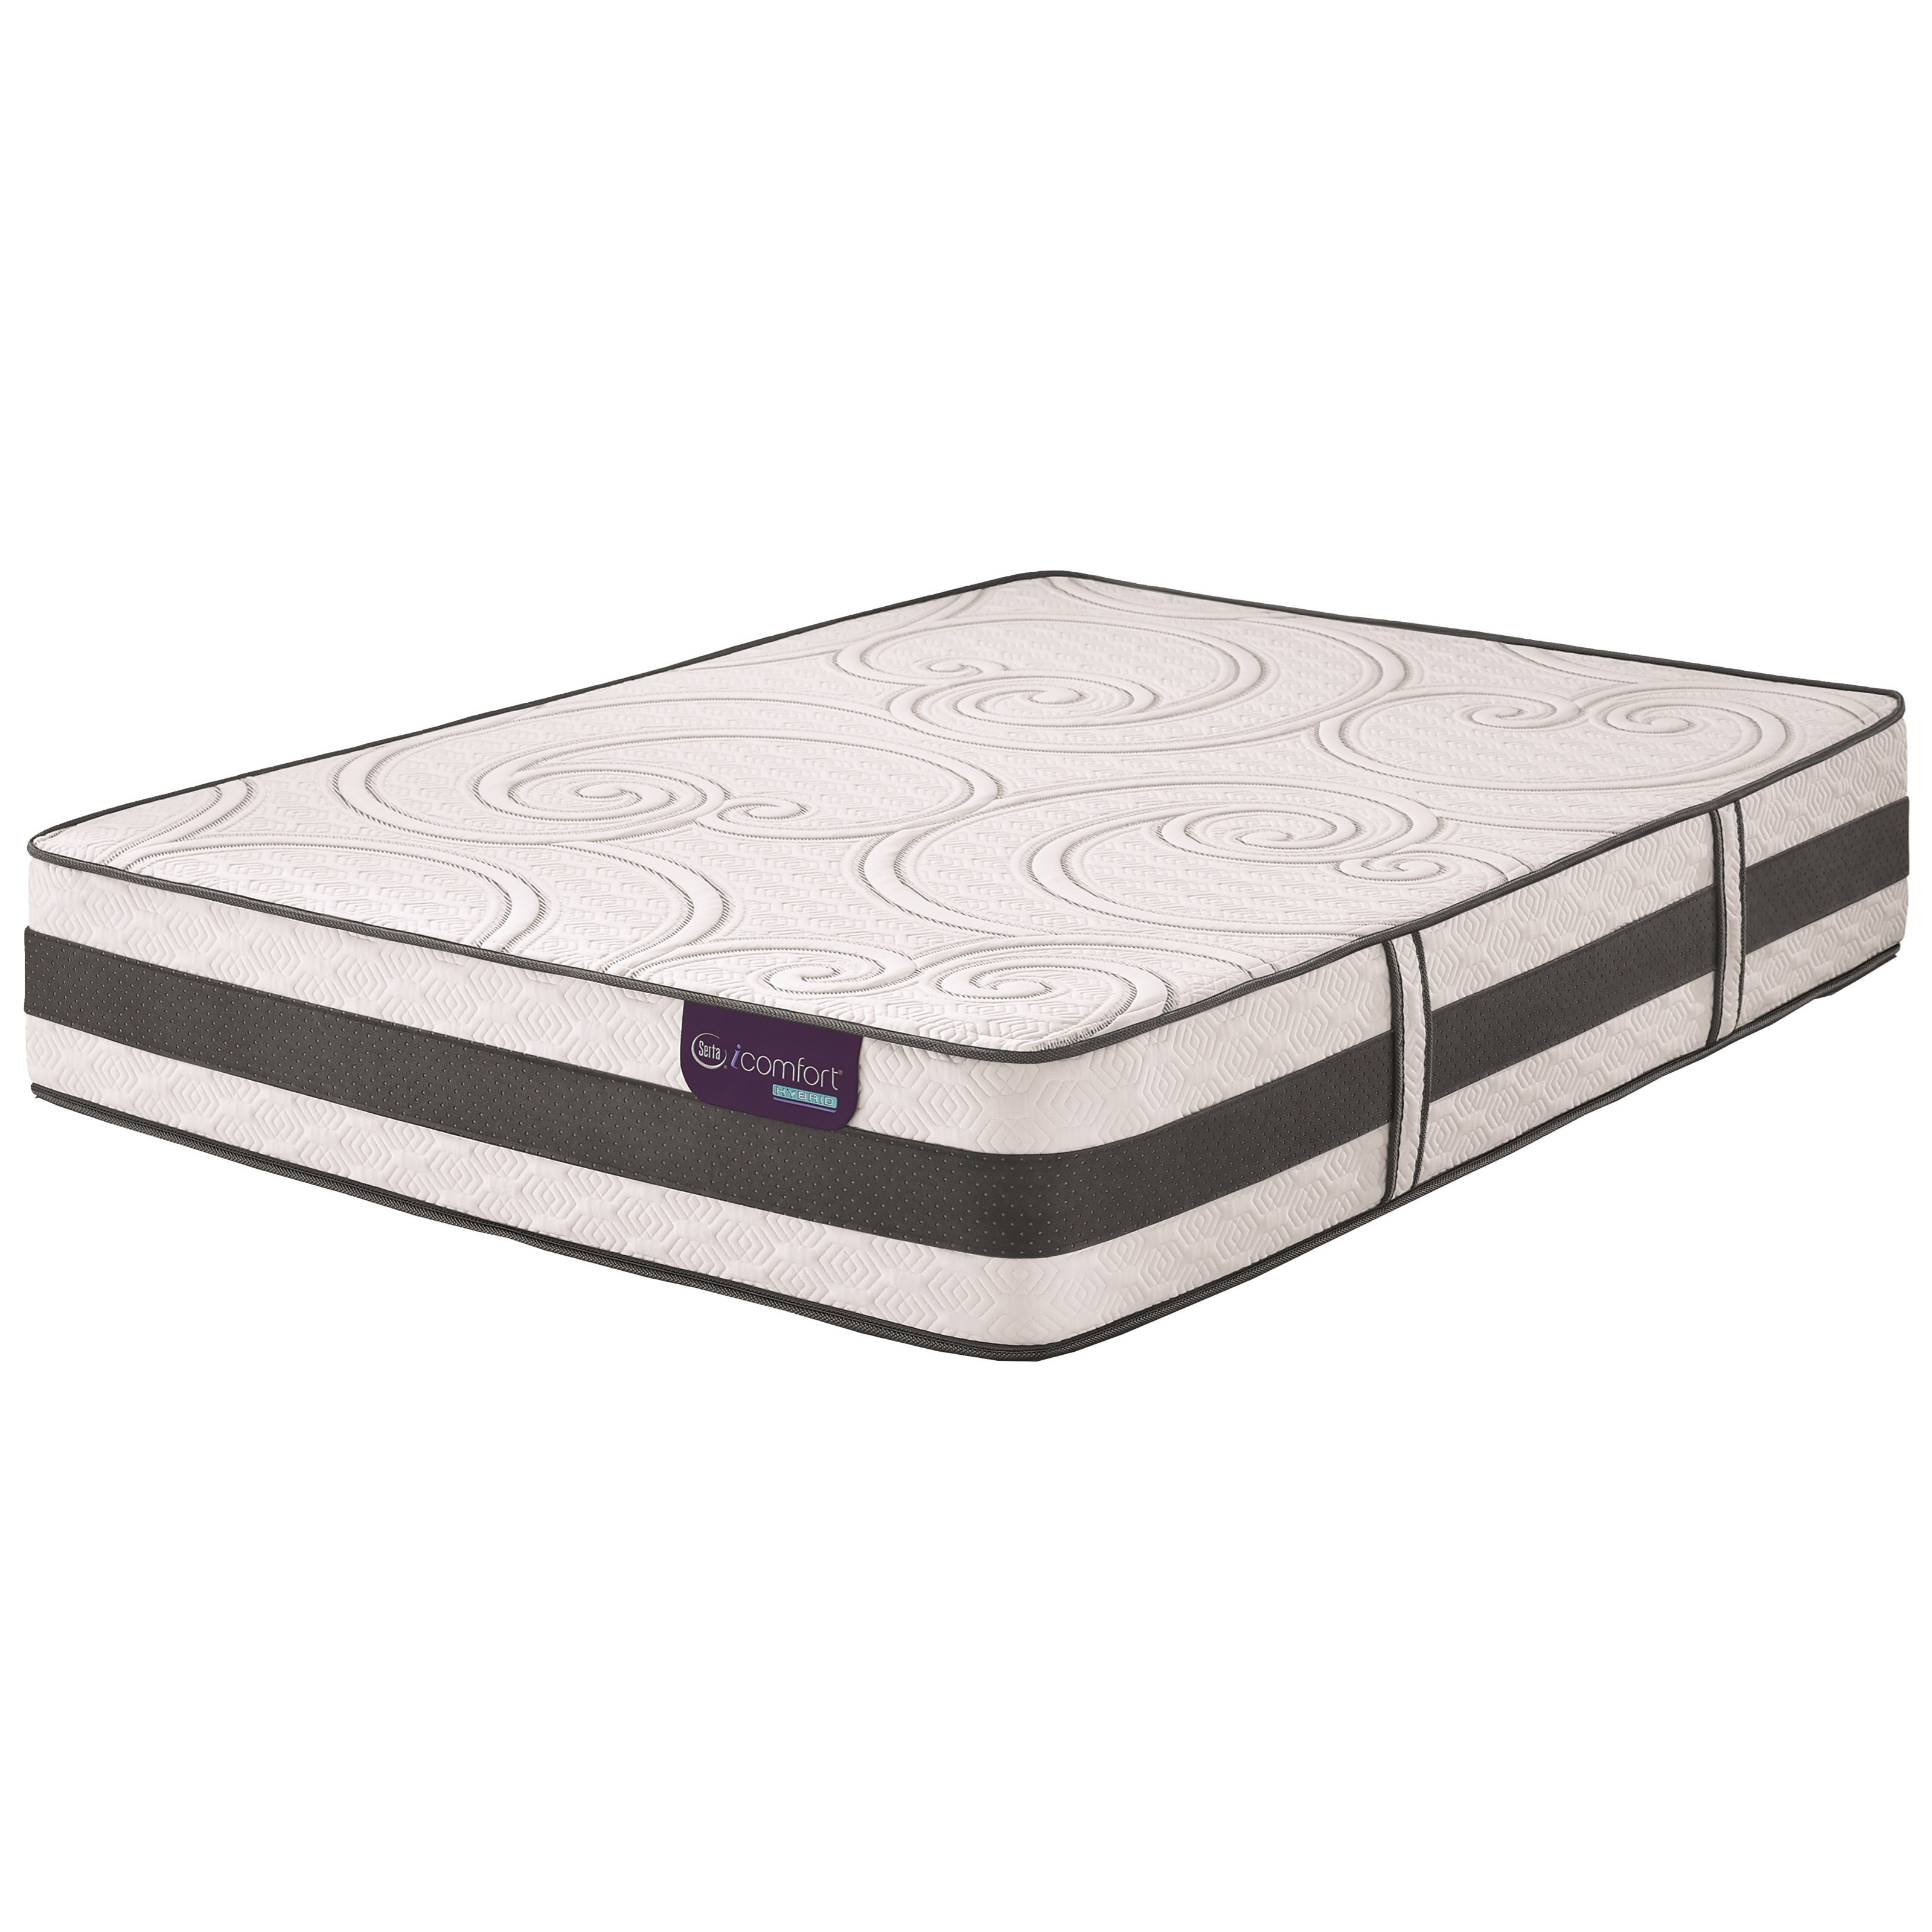 Serta iComfort Hybrid Philosopher Full Extra Firm Hybrid Mattress - Item Number: PhilosopherXF-F